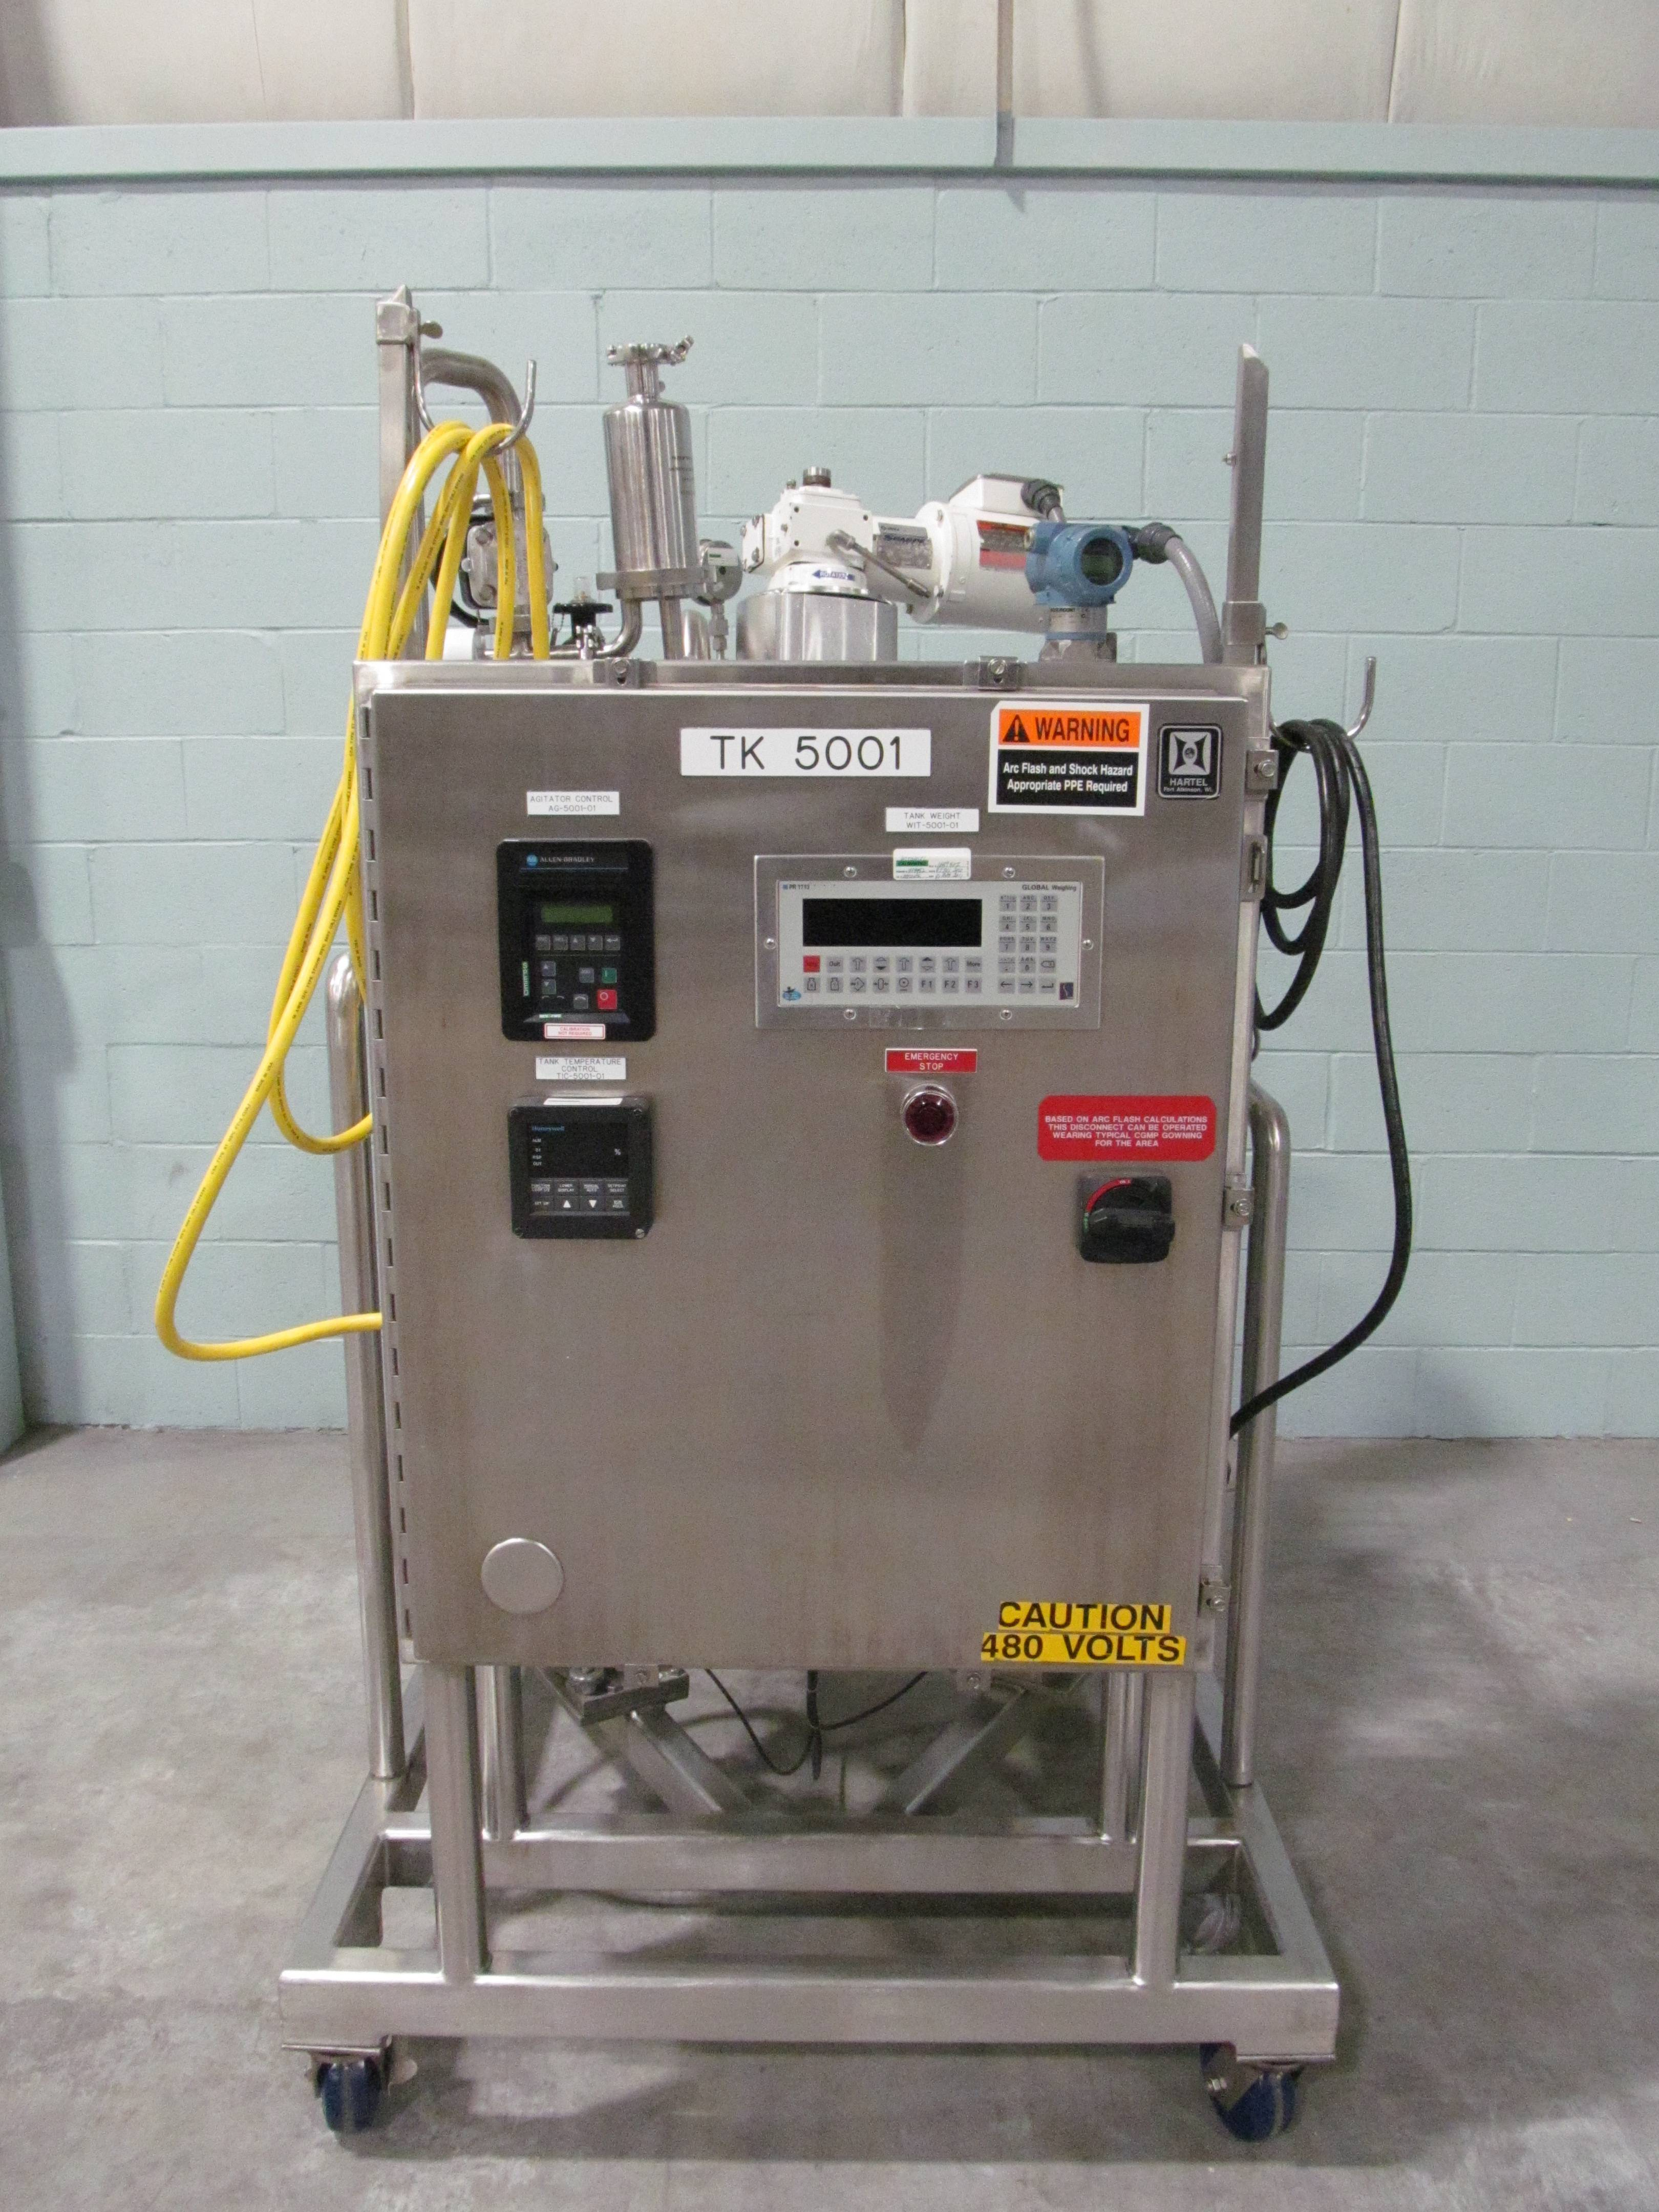 DCI 100 Liter Stainless Steel Jacketed Reactor Tank With Top Agitation And Control Panel